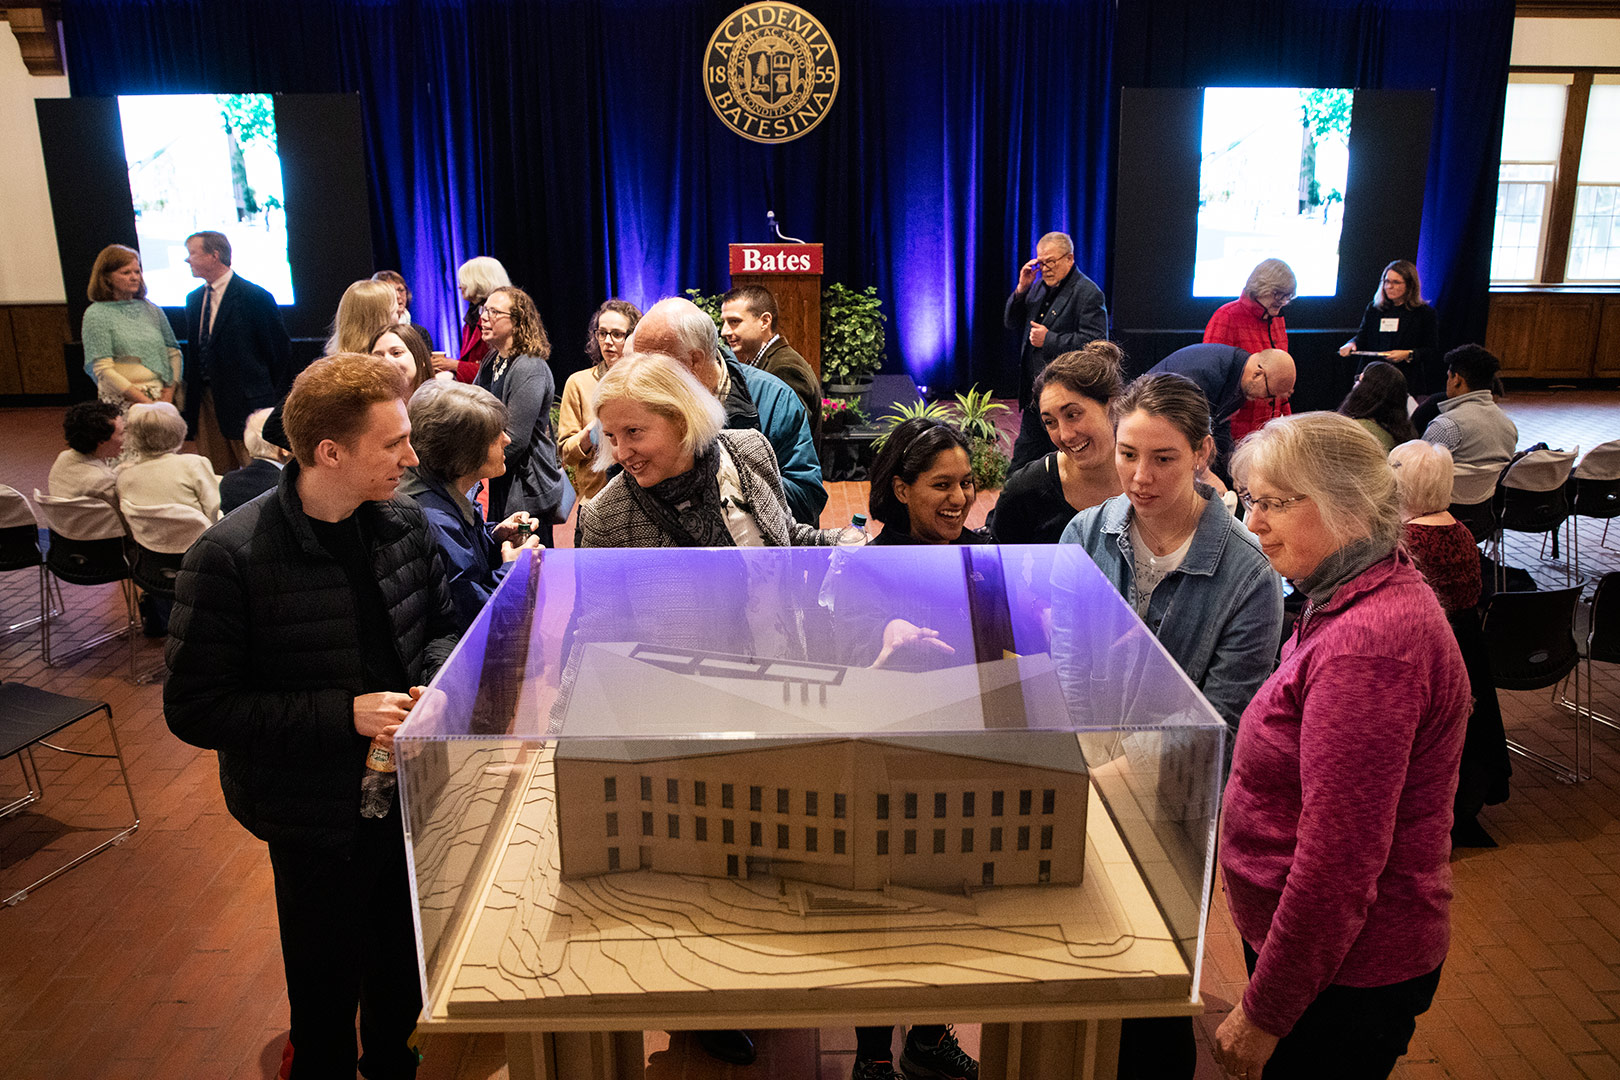 Shortly before the start of a campus-wide celebration of the groundbreaking of the Bonney Science Center on May 2, attendees inspect a model of the building in Memorial Commons. (Theophil Syslo/Bates College)